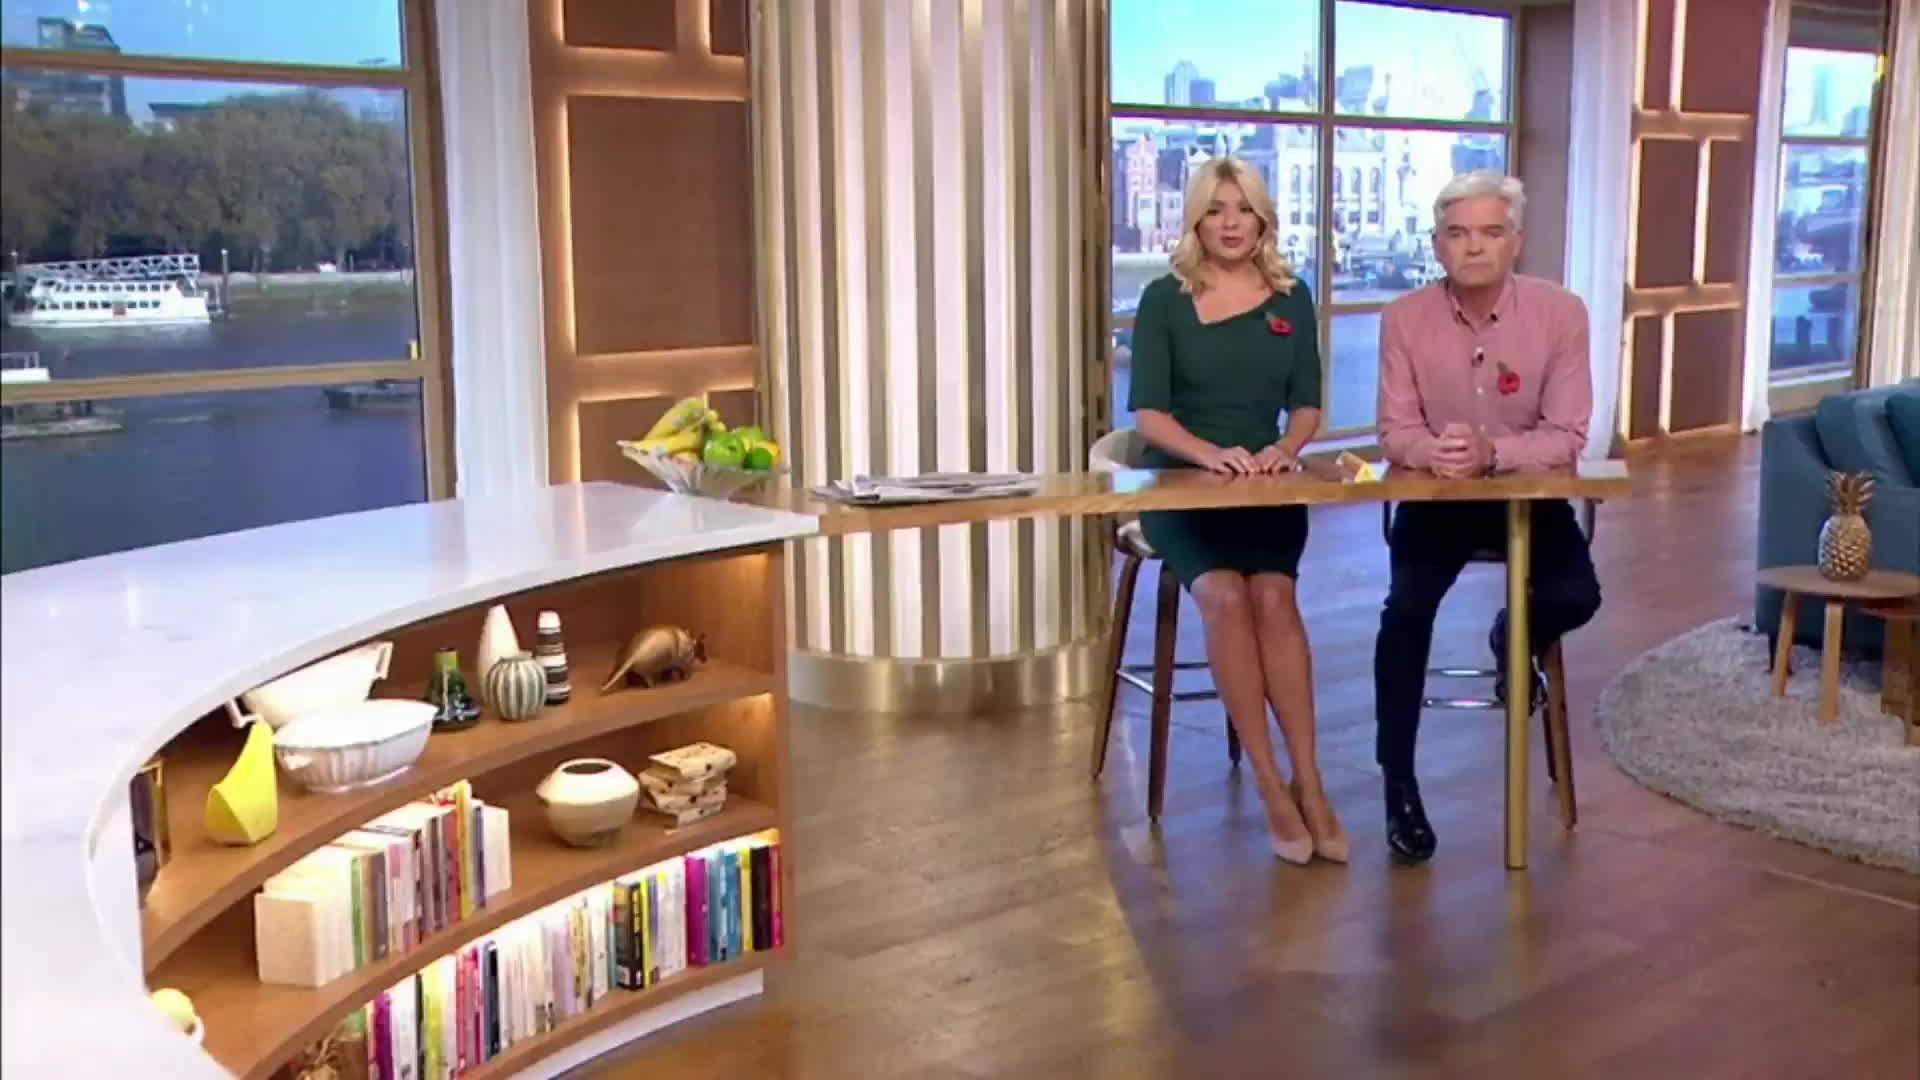 holly willoughby green dress, holly willoughby legs, thehollywilloughby, Holly Willoughby: Sexy Tight Green Dress GIFs